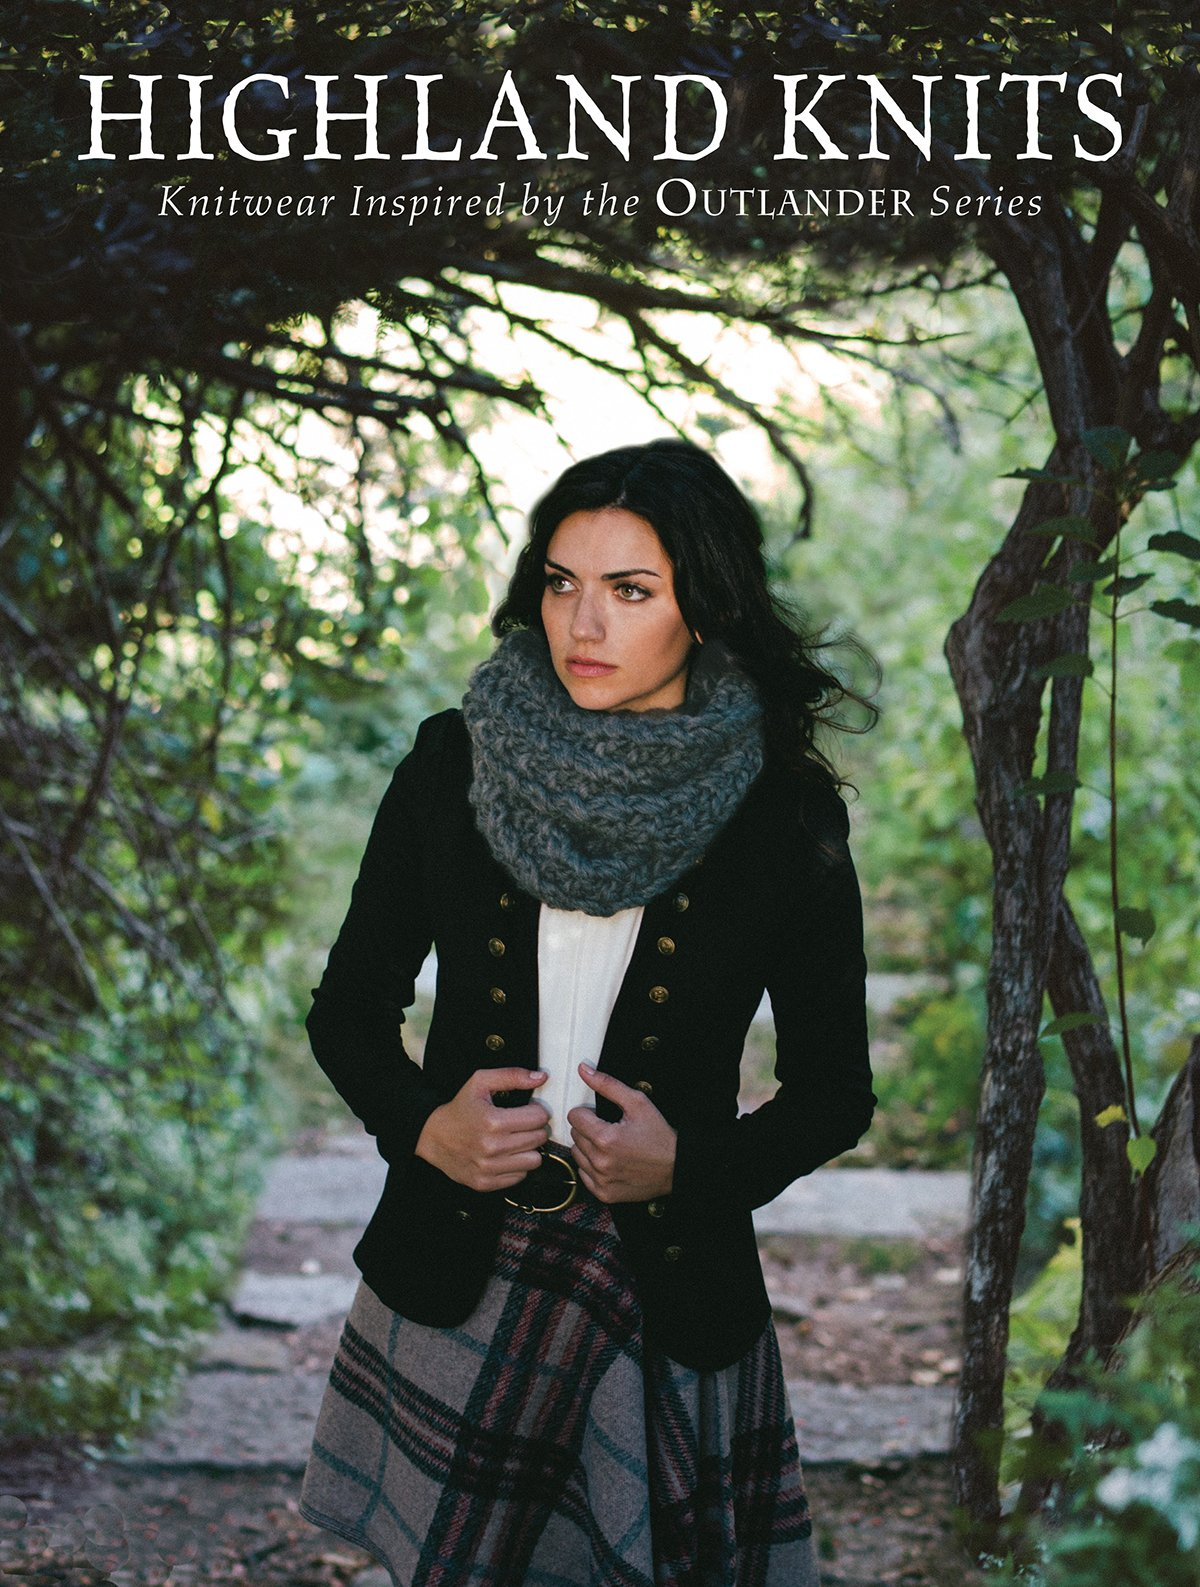 Highland Knits: Knitwear Inspired by the Outlander Series PDF